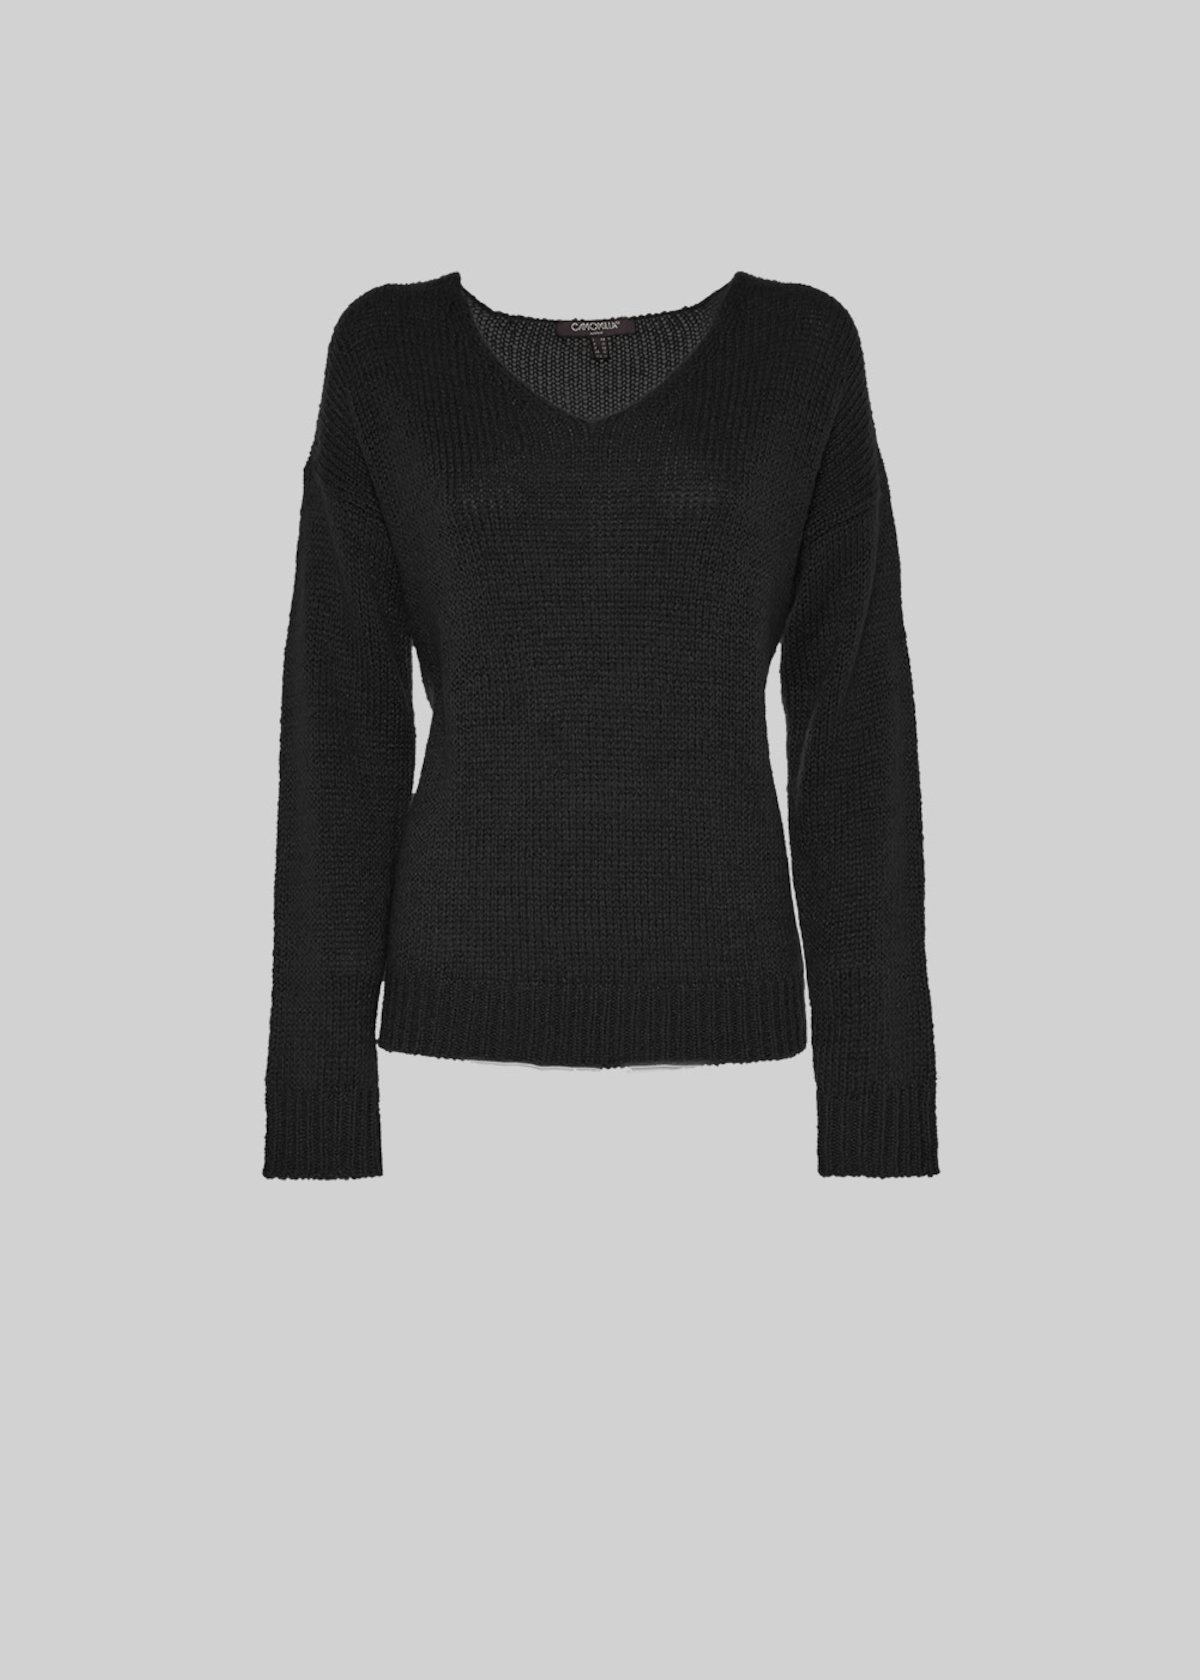 Marrie lurex effect sweater with V-neck - Black